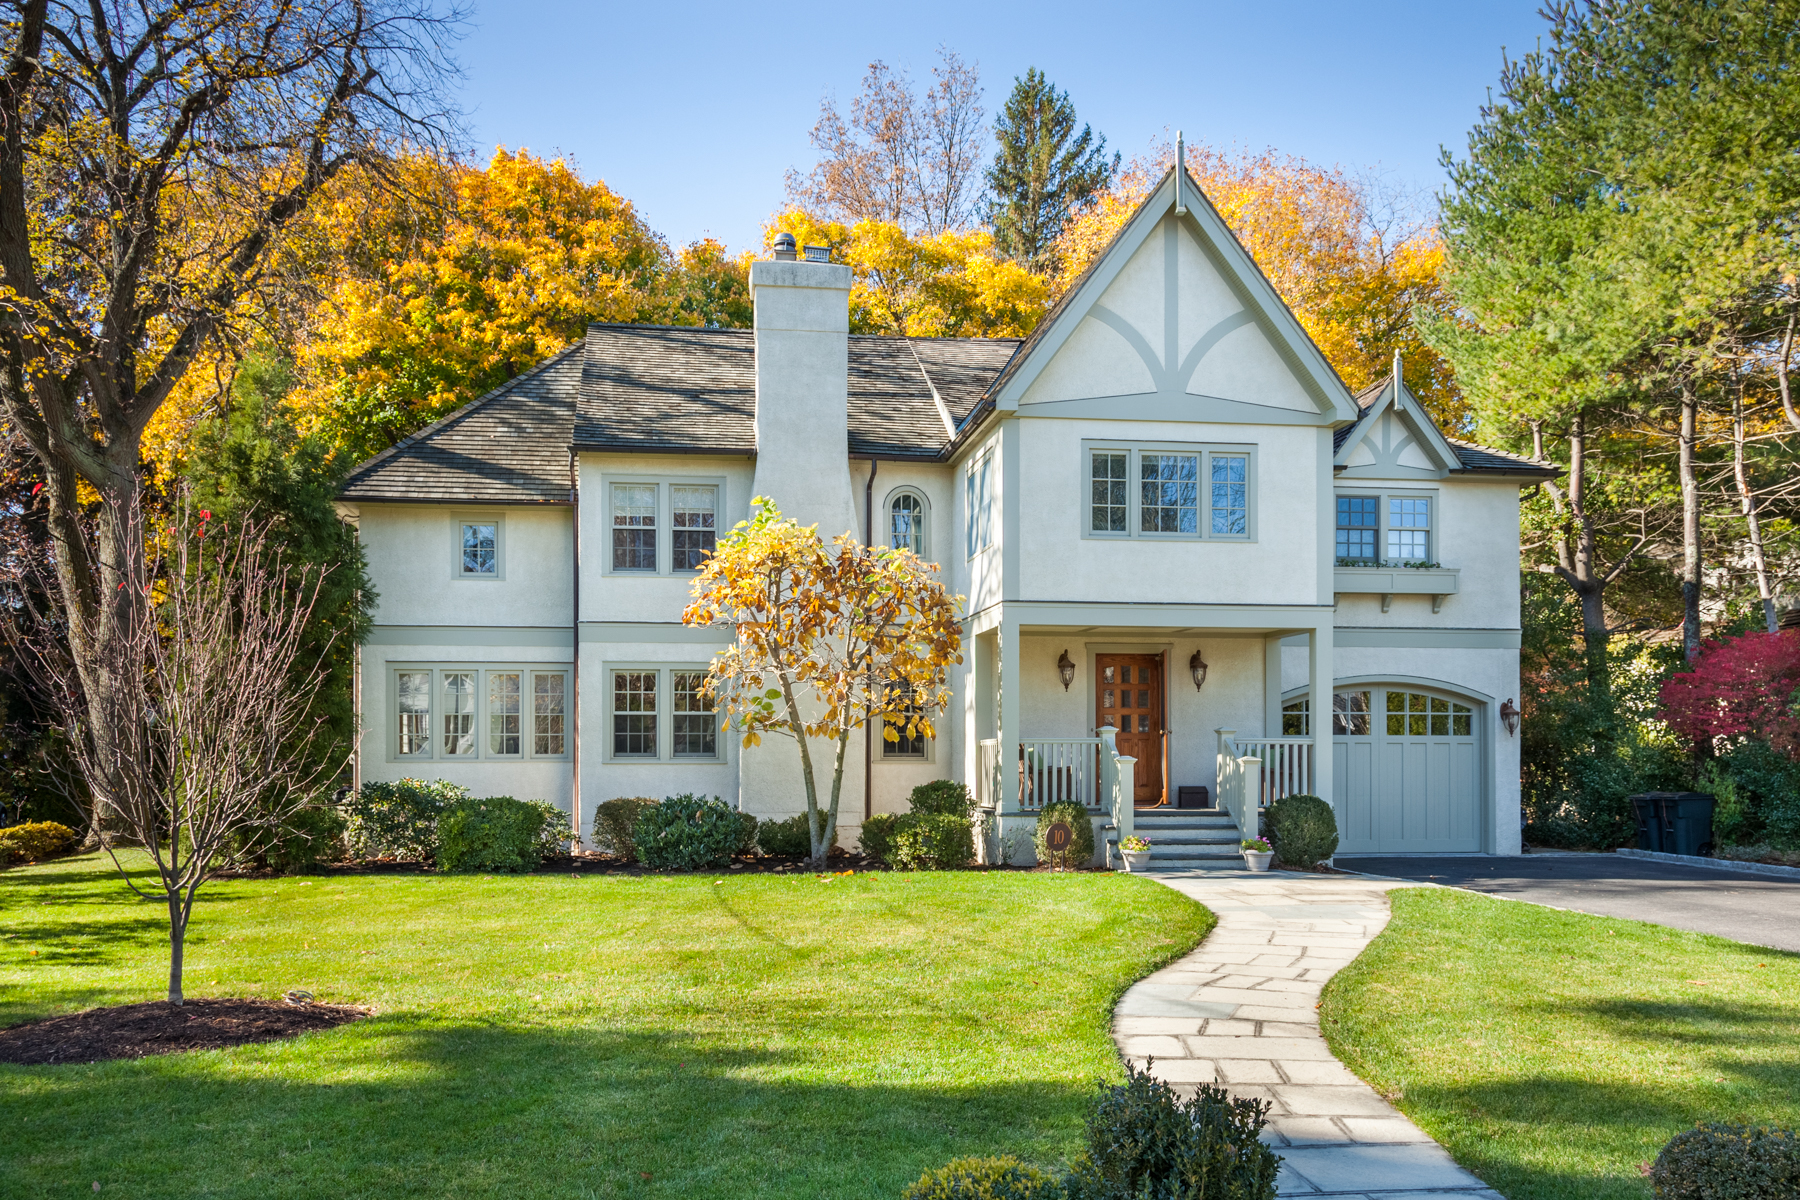 Single Family Home for Sale at Stunning Curb Appeal 10 Lee Place Bronxville, New York 10708 United States